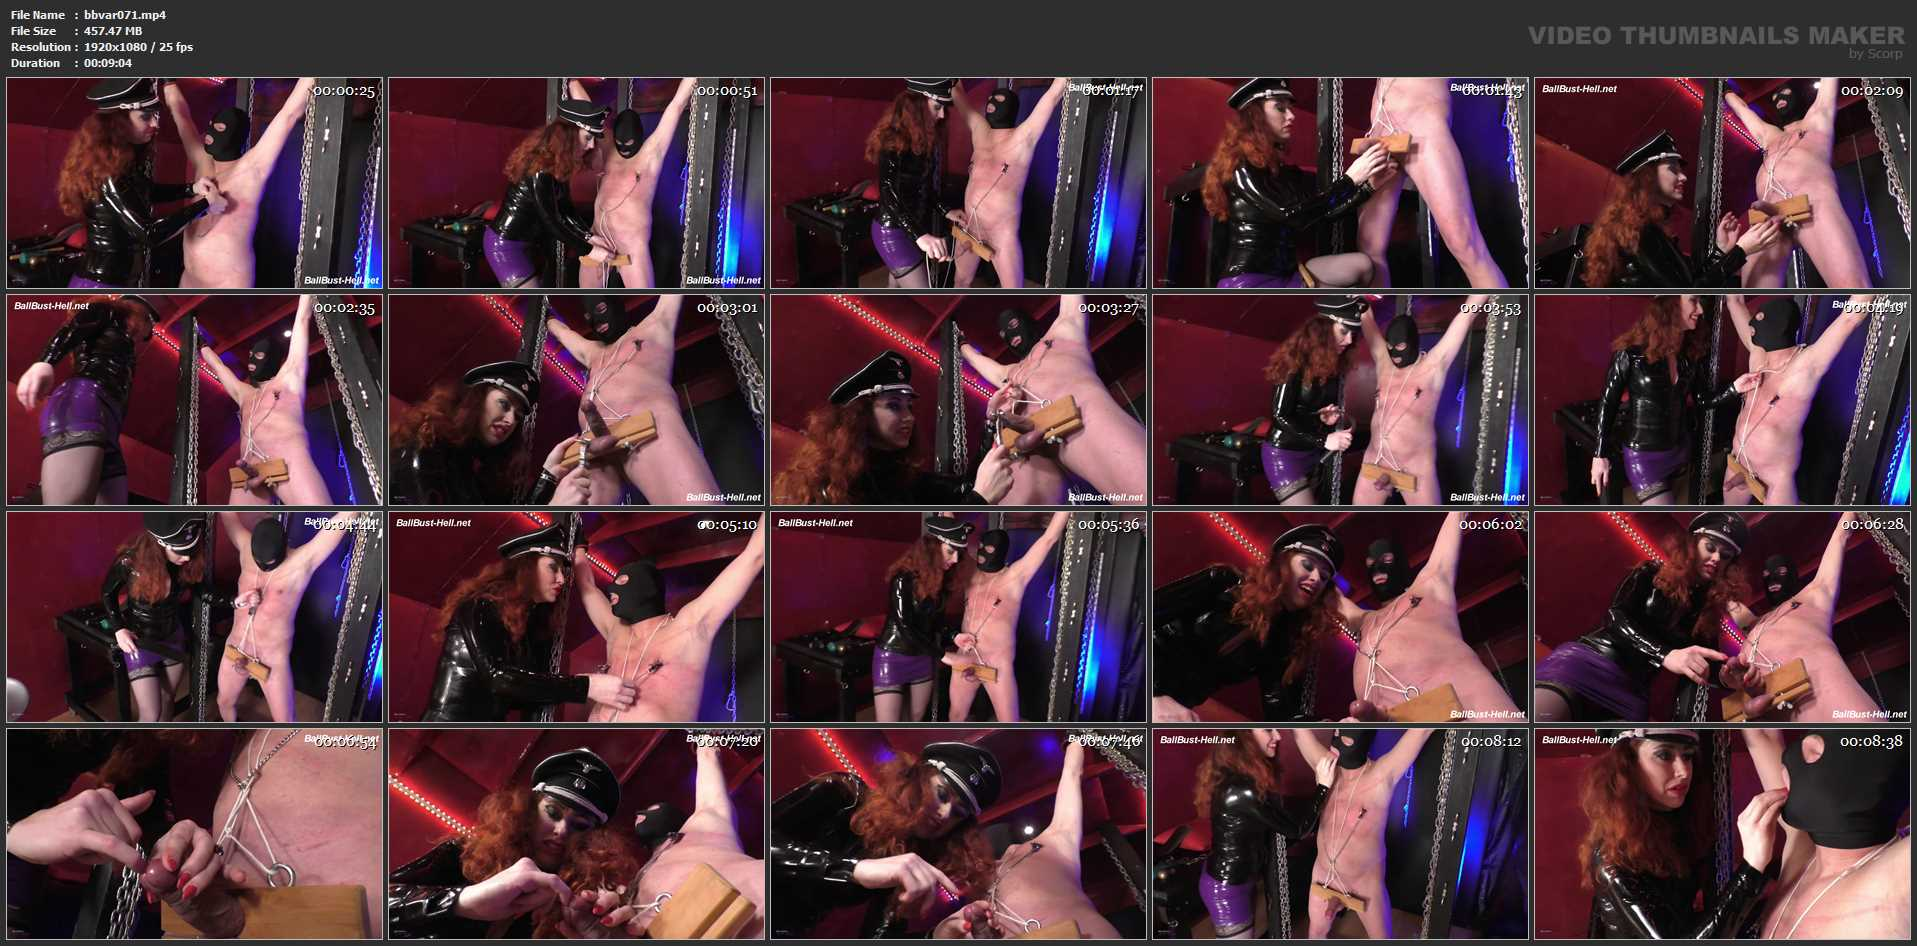 Mistress Lady Renee In Scene: CBT at the poles - MISTRESSLADYRENEE - FULL HD/1080p/MP4